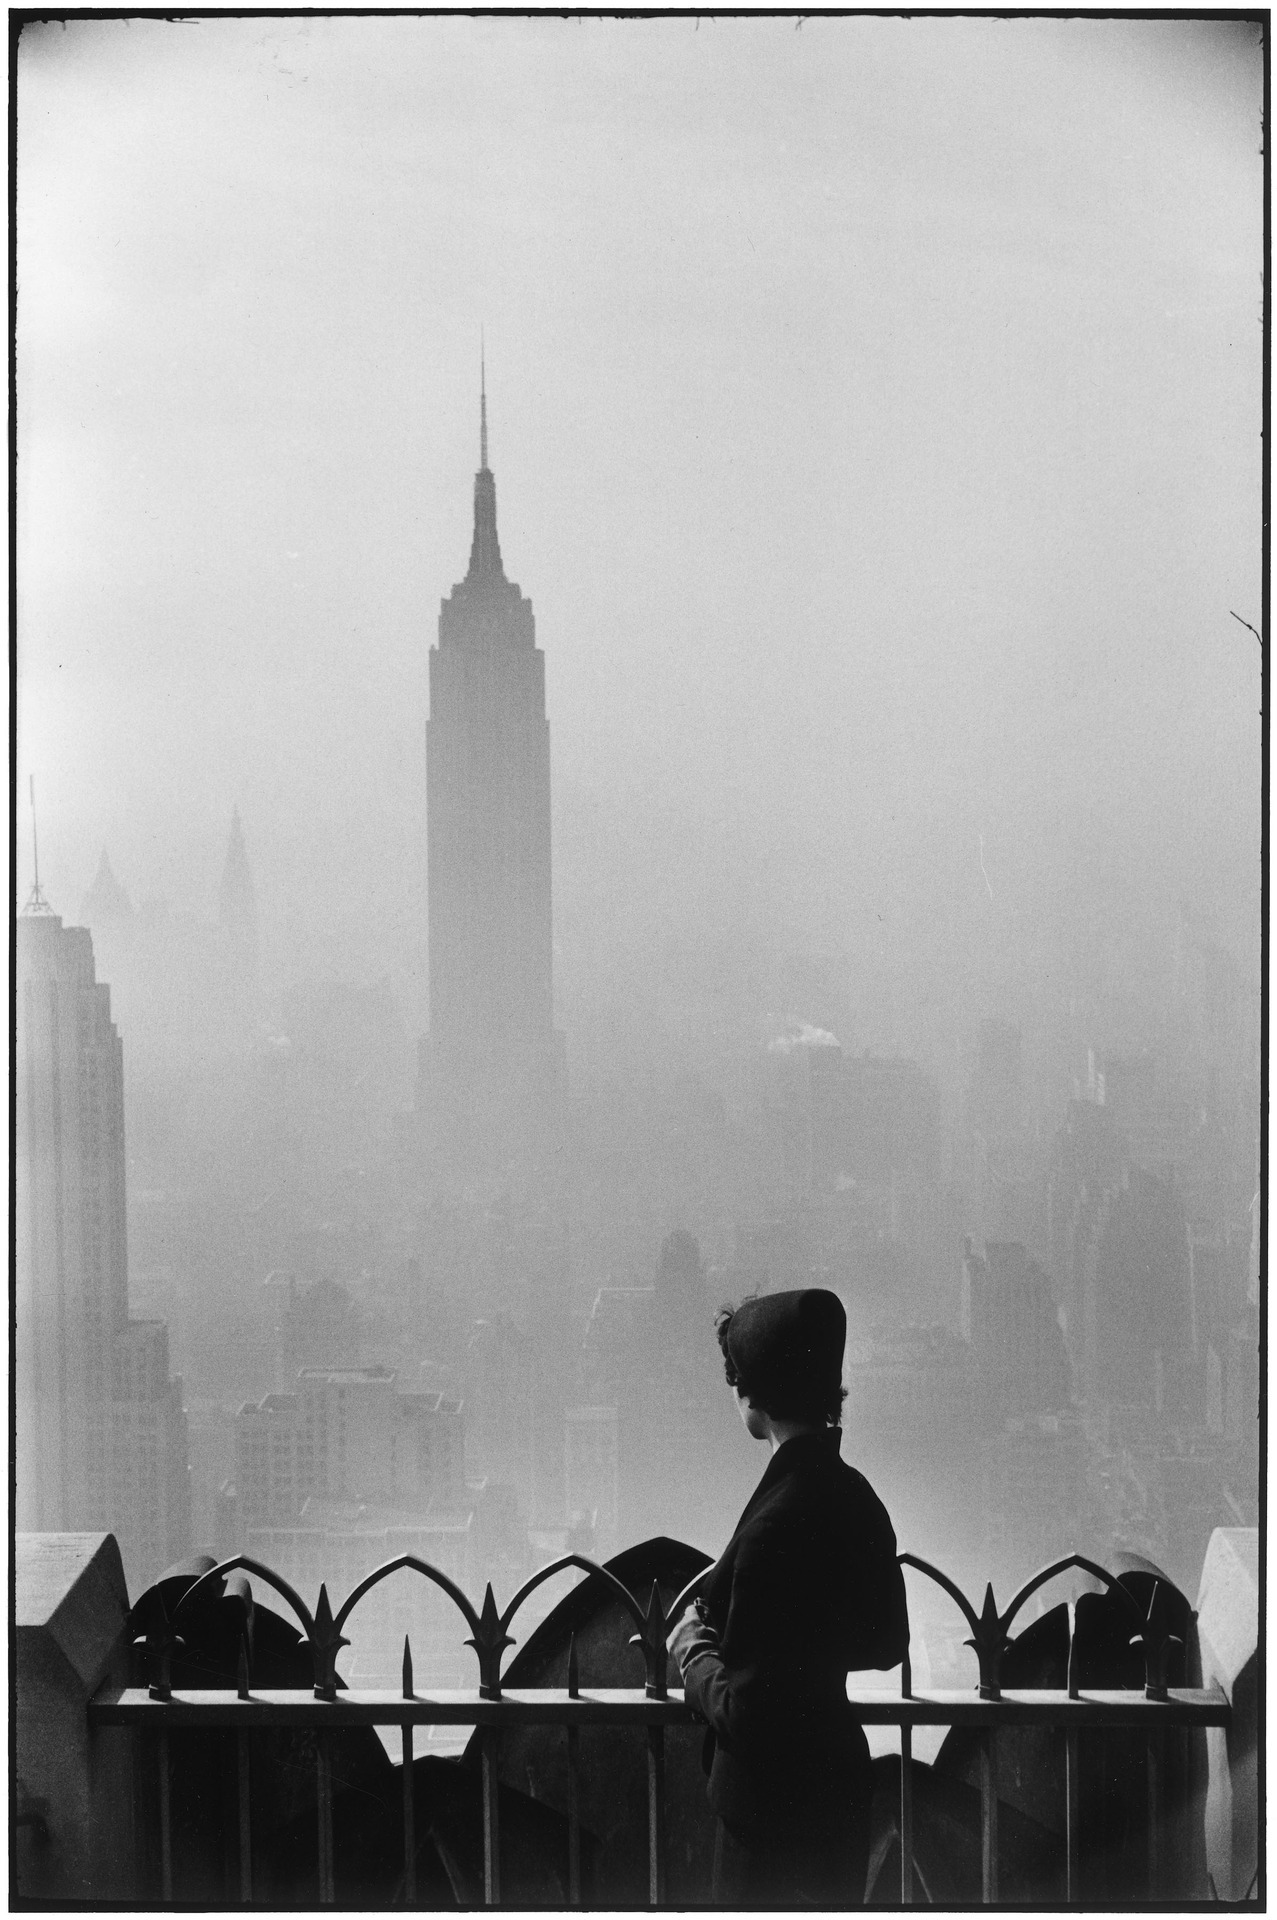 Empire State Building, New York, 1955. By Elliott Erwitt